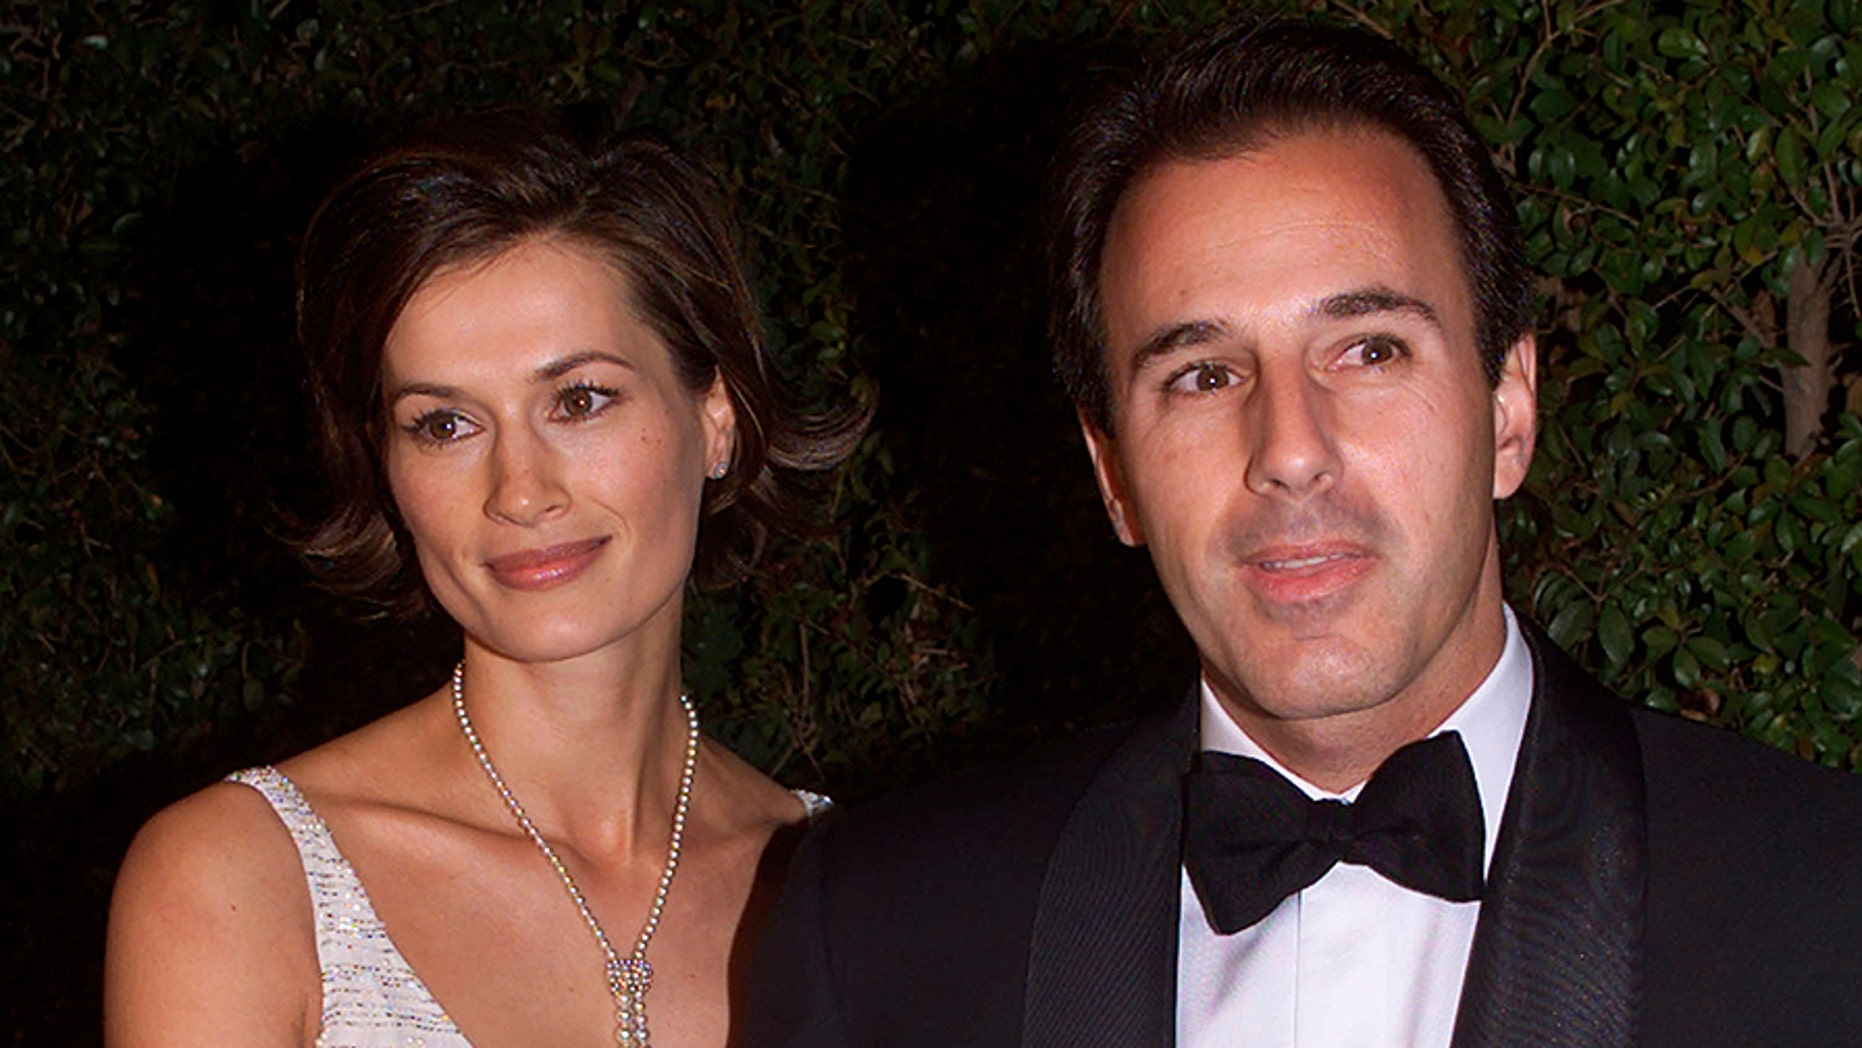 Matt Lauer arrives with his wife, Annette Roque, at an Academy Awards afterparty in Beverly Hills, Calif., in this undated photo.